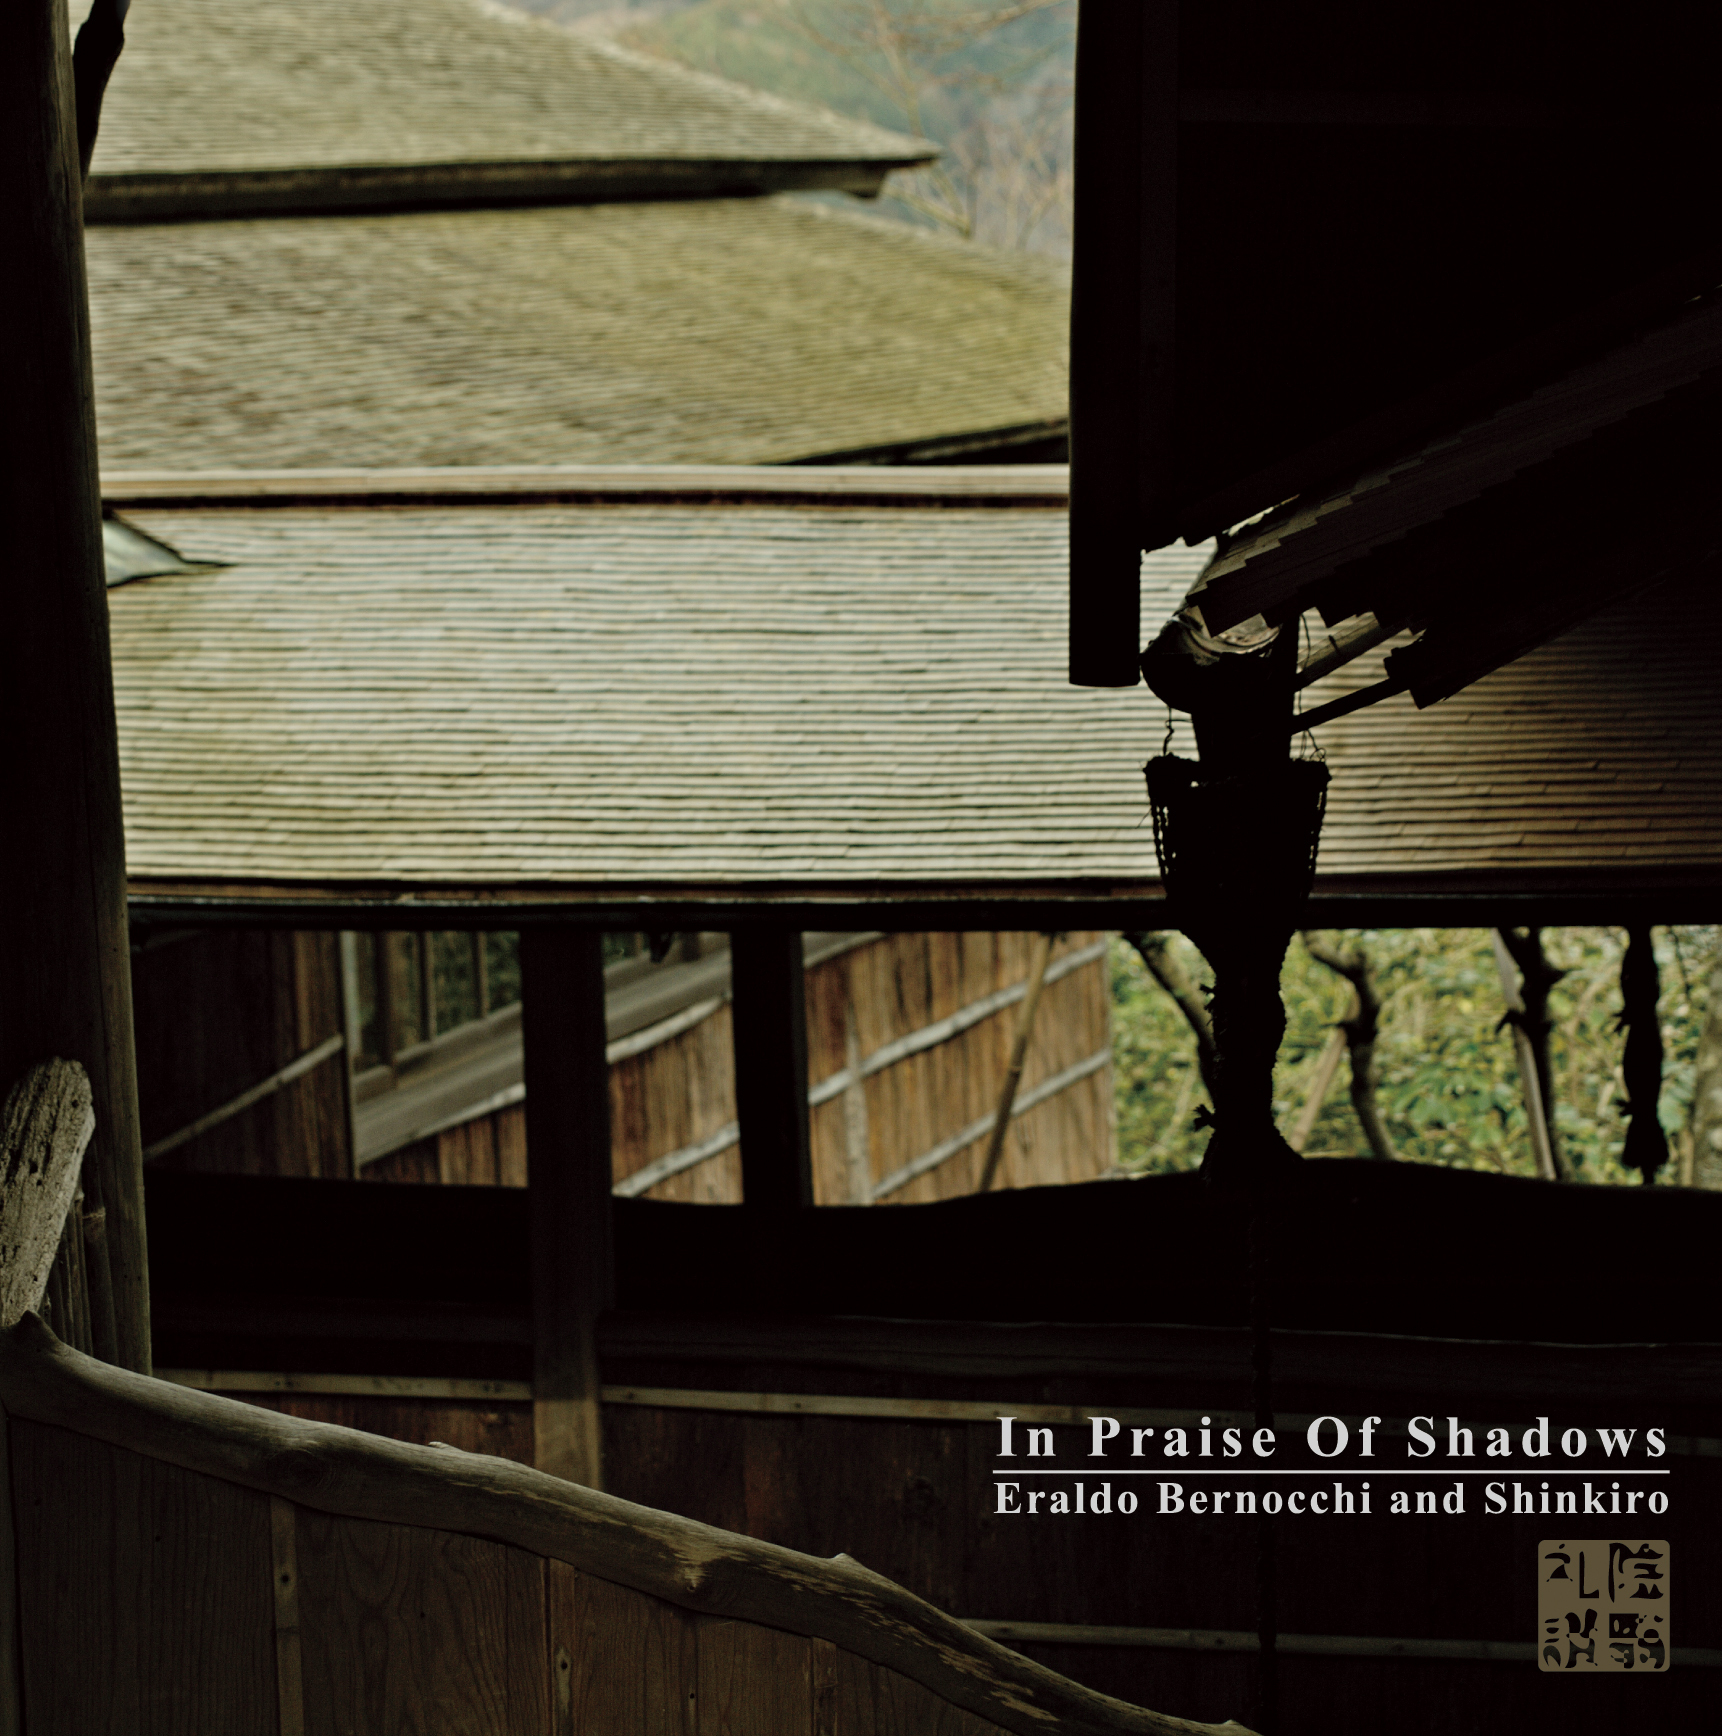 Eraldo Bernocchi and Shinkiro - In Praise Of Shadows  CD - 画像1